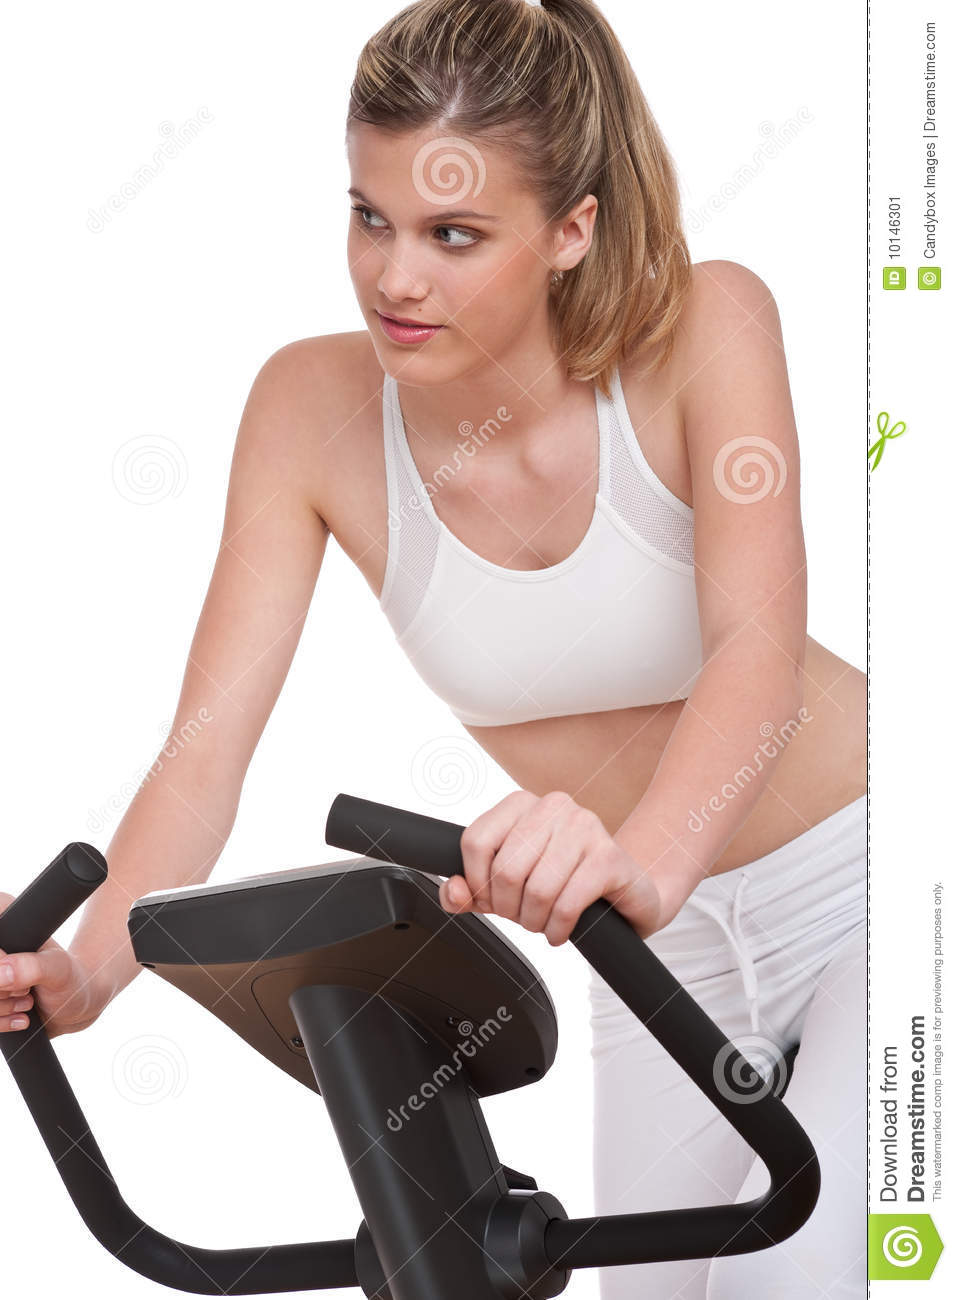 Fitness series - Young woman on exercise bike